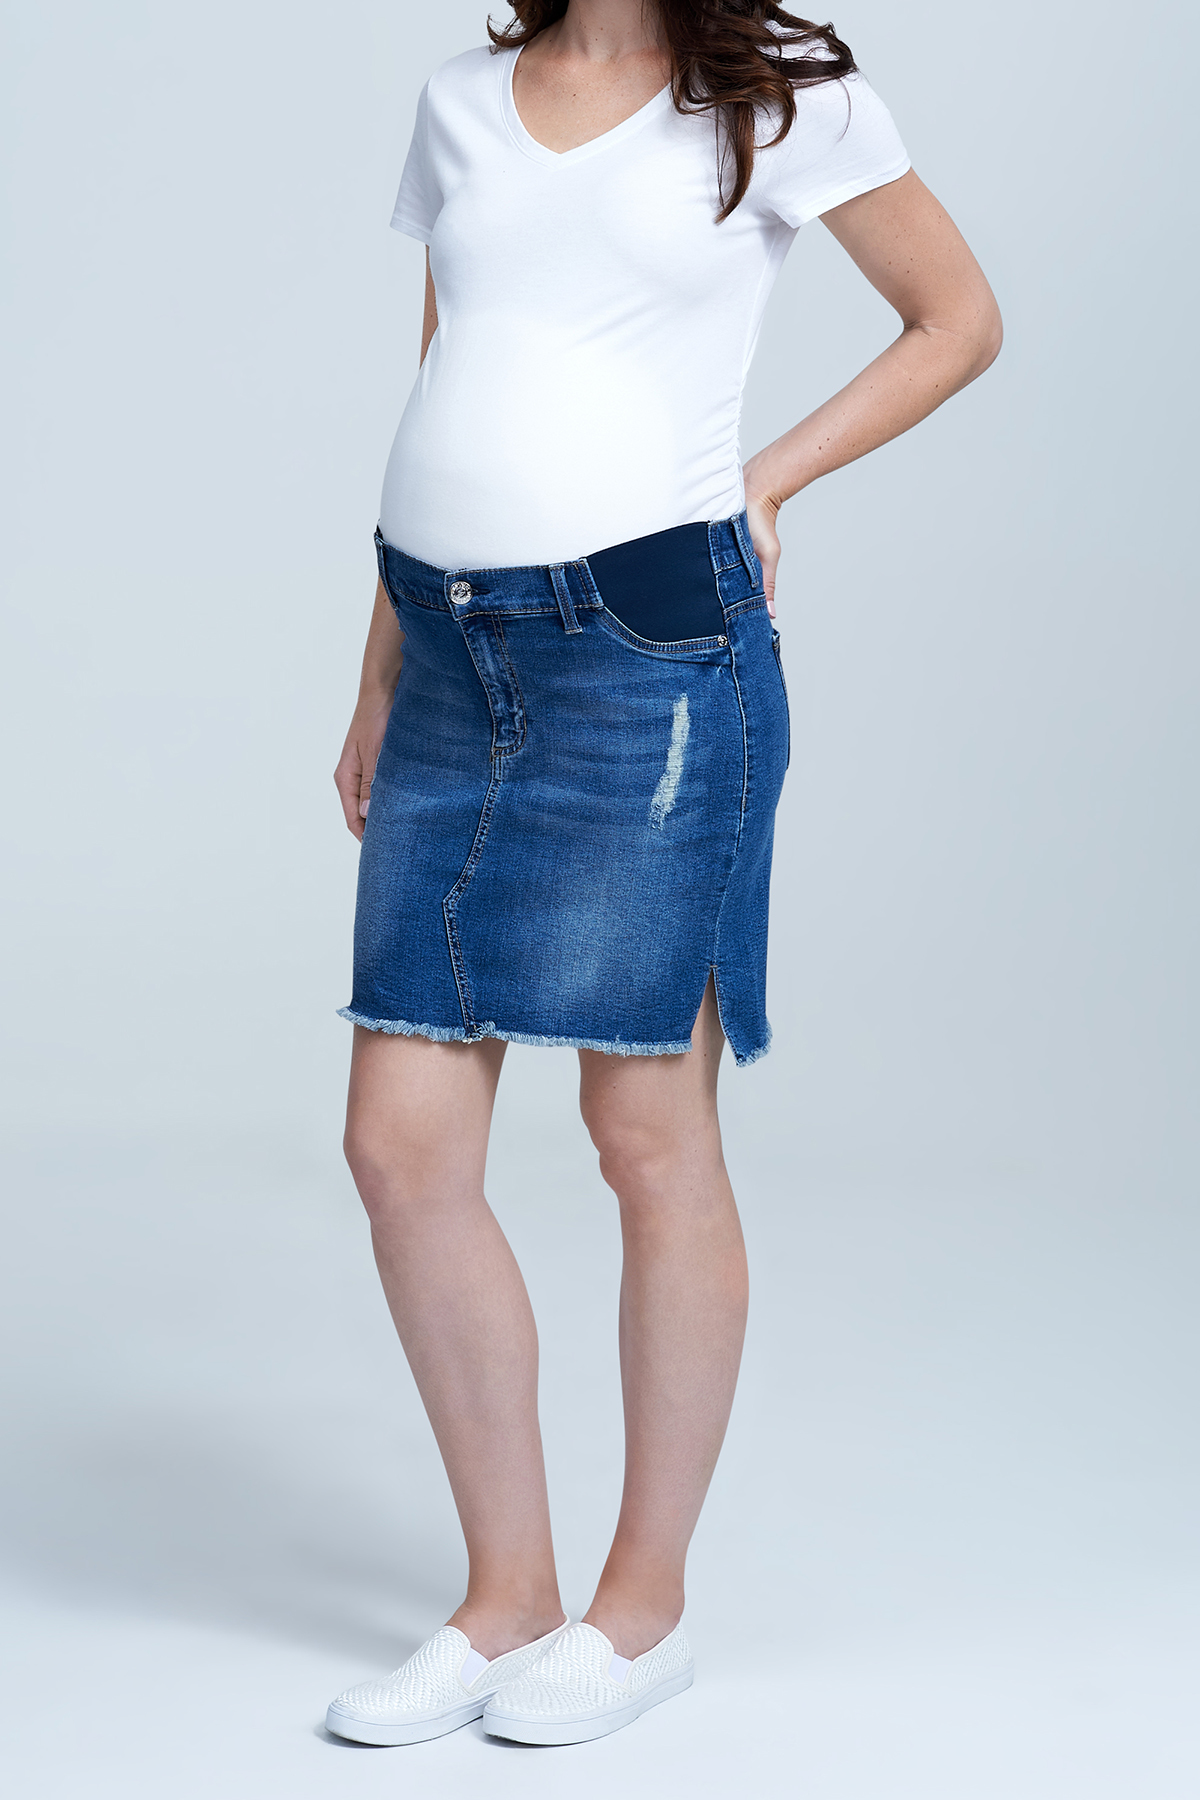 Seven7 Jeans Side Panel Frayed Hem Denim Maternity Skirt <p>Offering the perfect balance of style and comfort for mamas-to-be, this distressed denim skirt features elasticized waist paneling that supports and expands with your growing figure throughout pregnancy.</p>